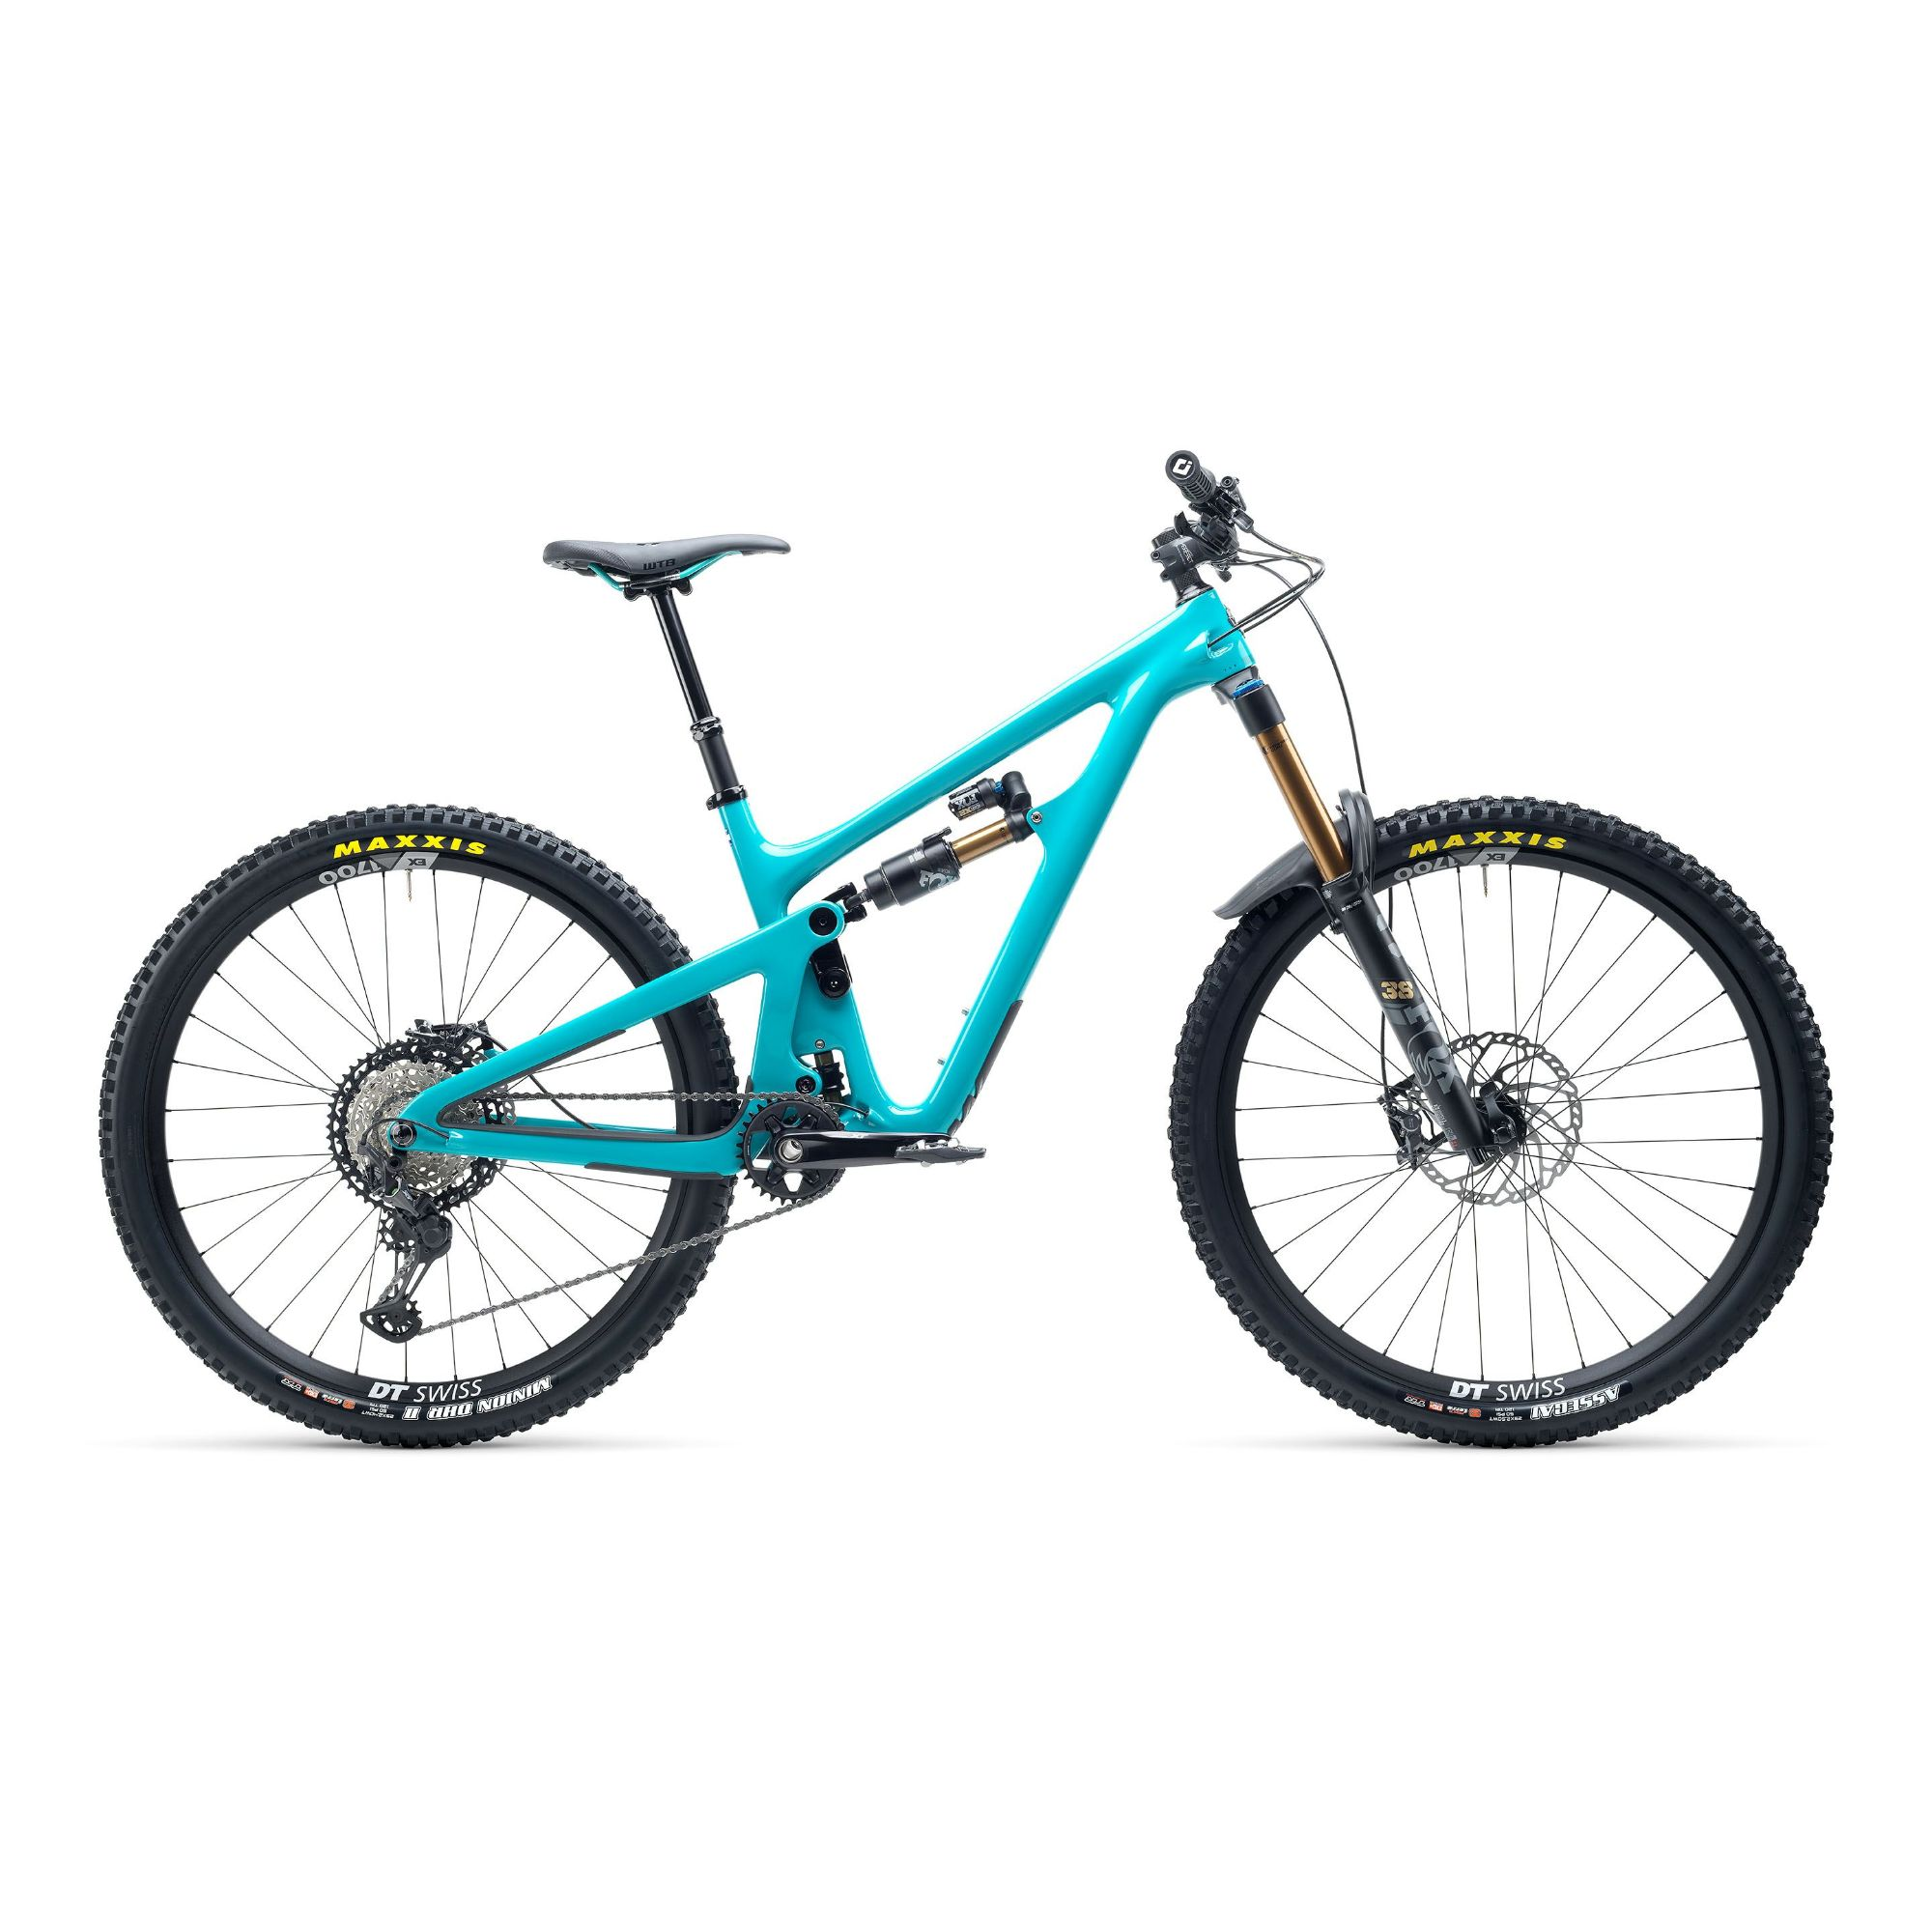 Yeti SB150 T series T1 29er XT Carbon Mountain Bike 2021 Turquoise